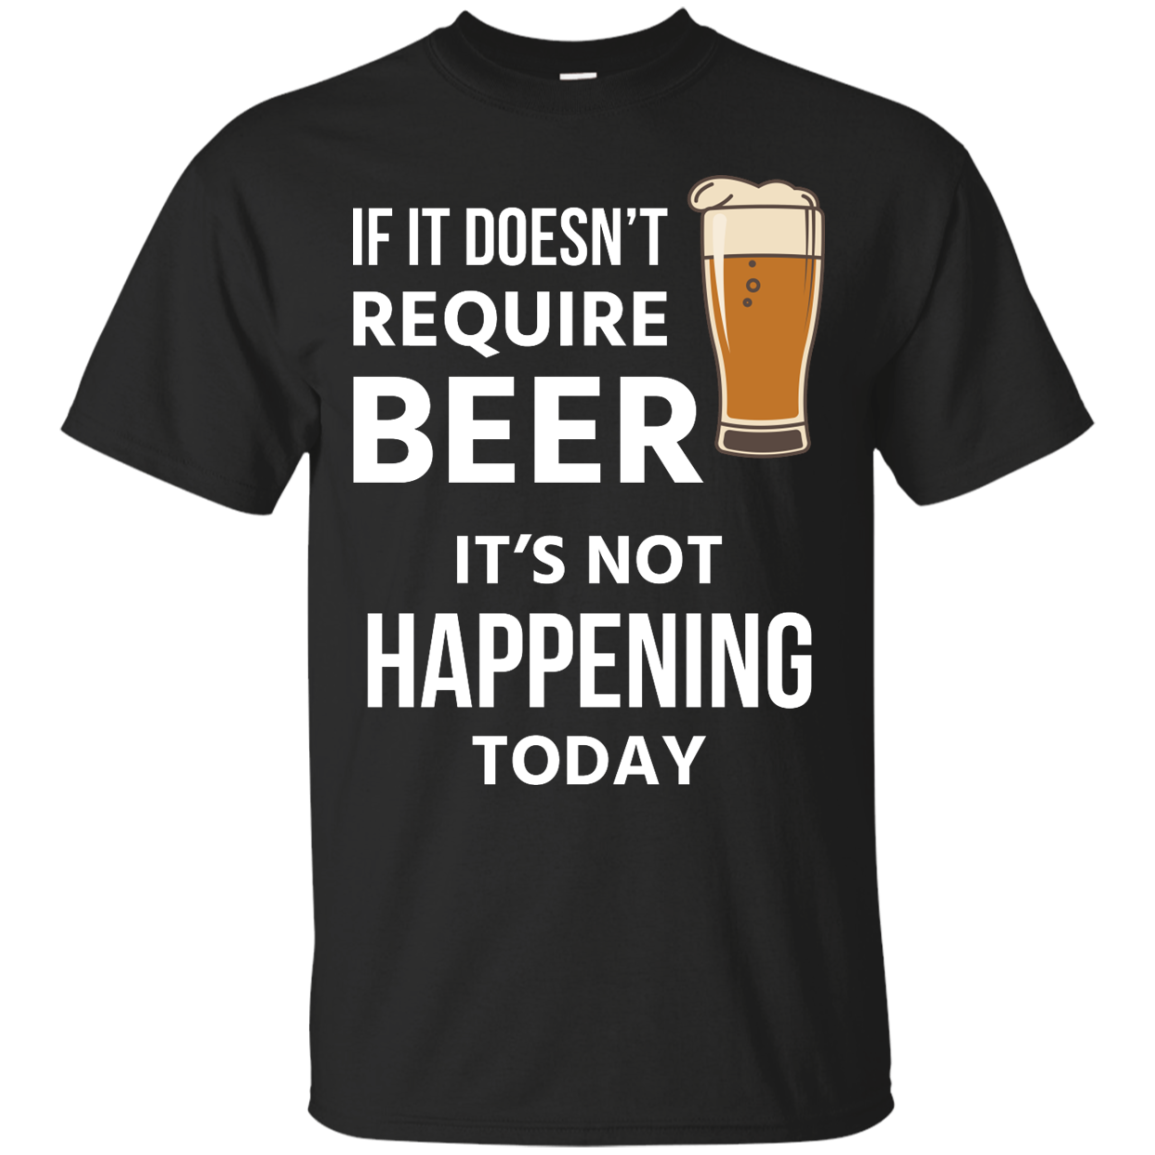 Love beer Shirts If doesn't require beer it's not happening today T shirt,Tank top & Hoodies